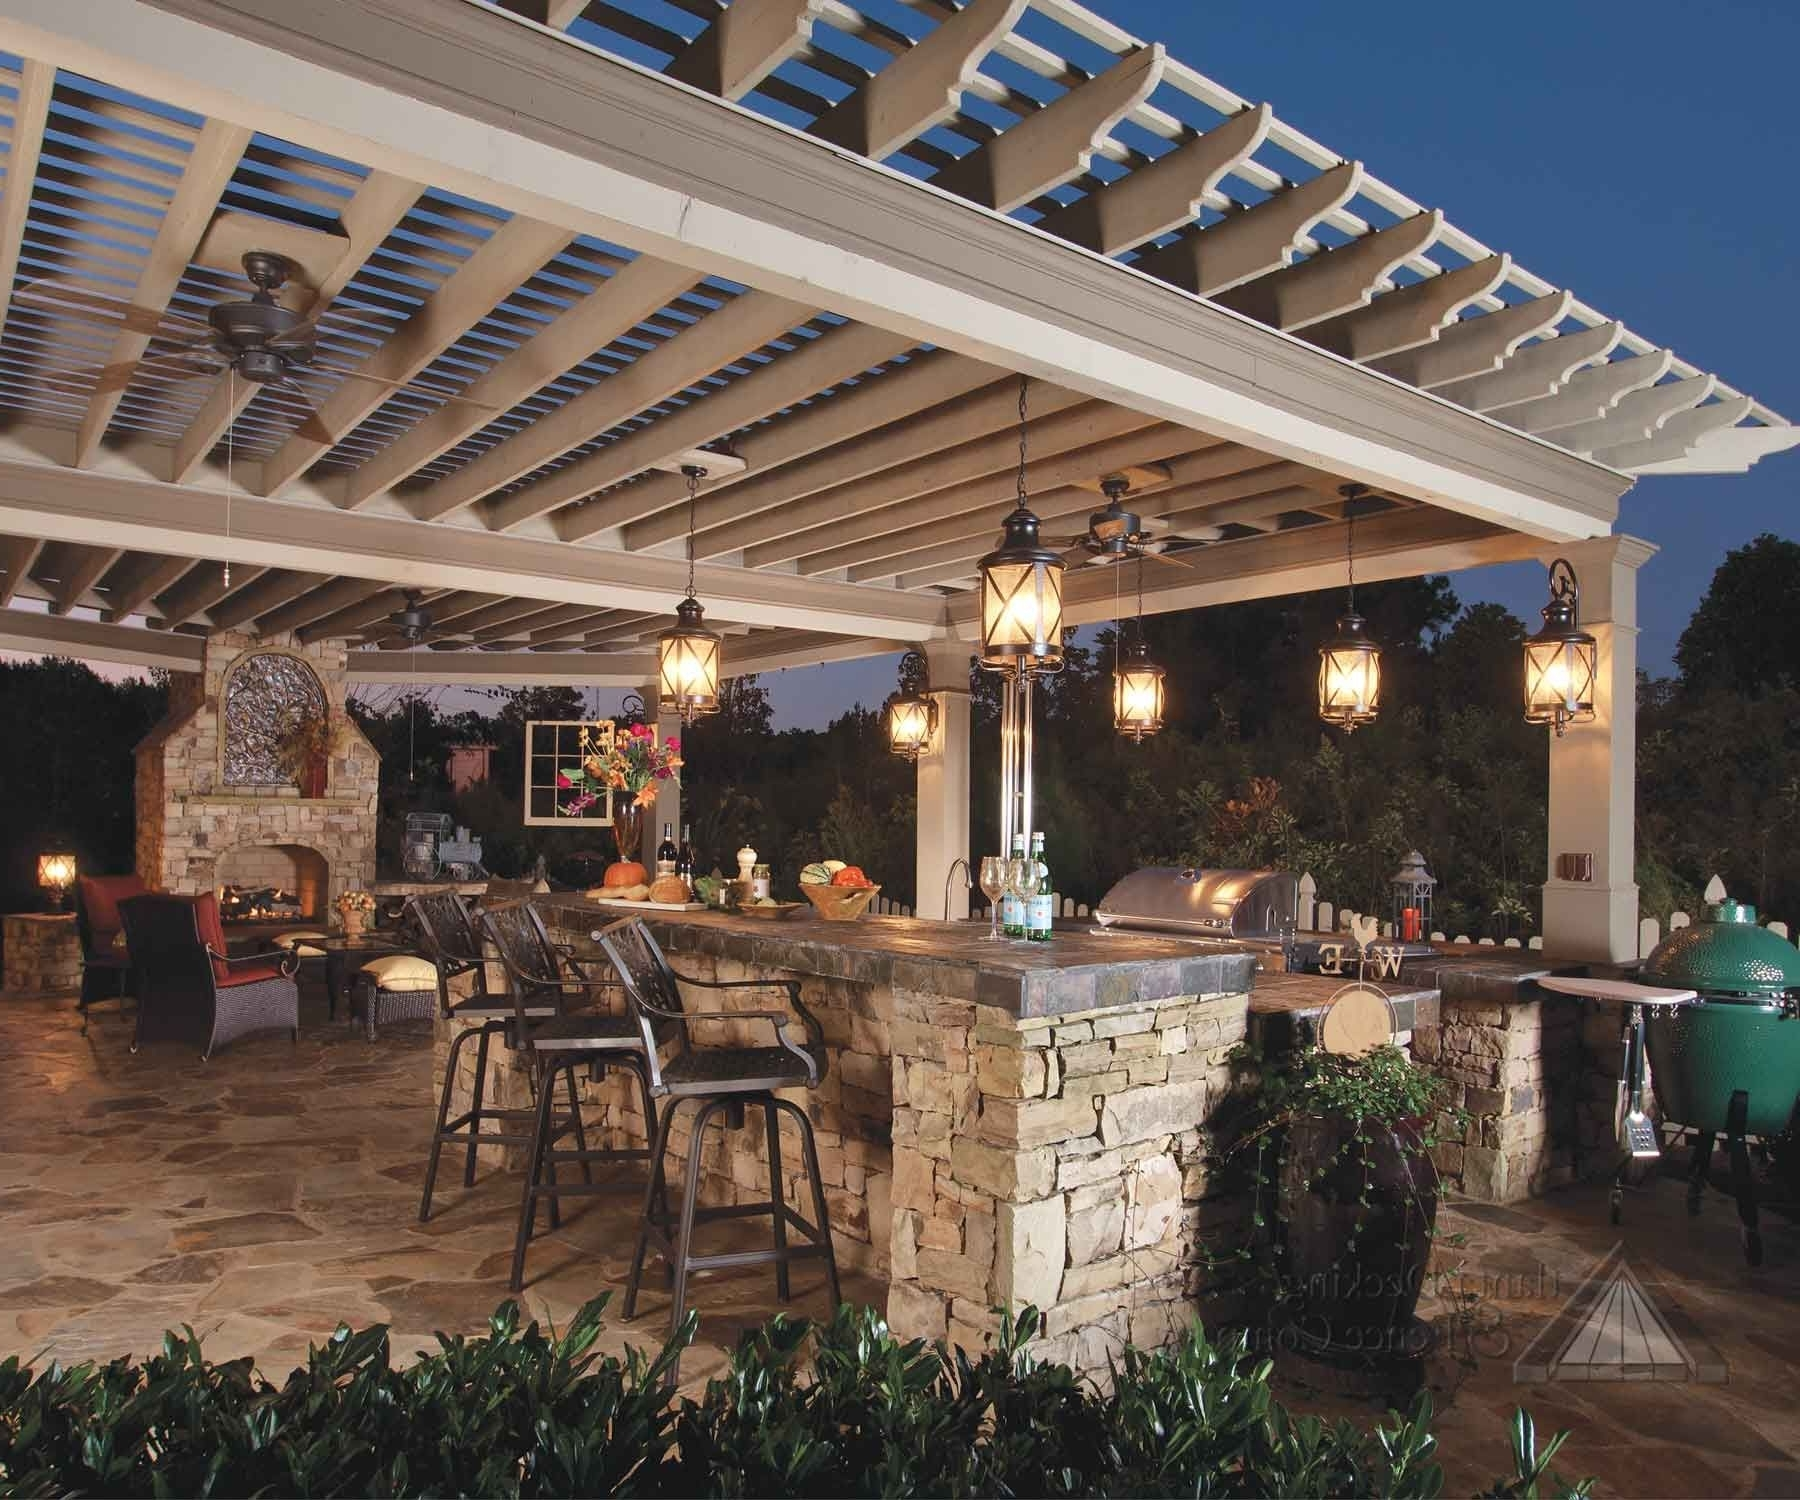 Outdoor Ceiling Fans Under Pergola For 2019 The Serving Area May Have A Raised Bar With Stools To Allow Guests (View 11 of 20)